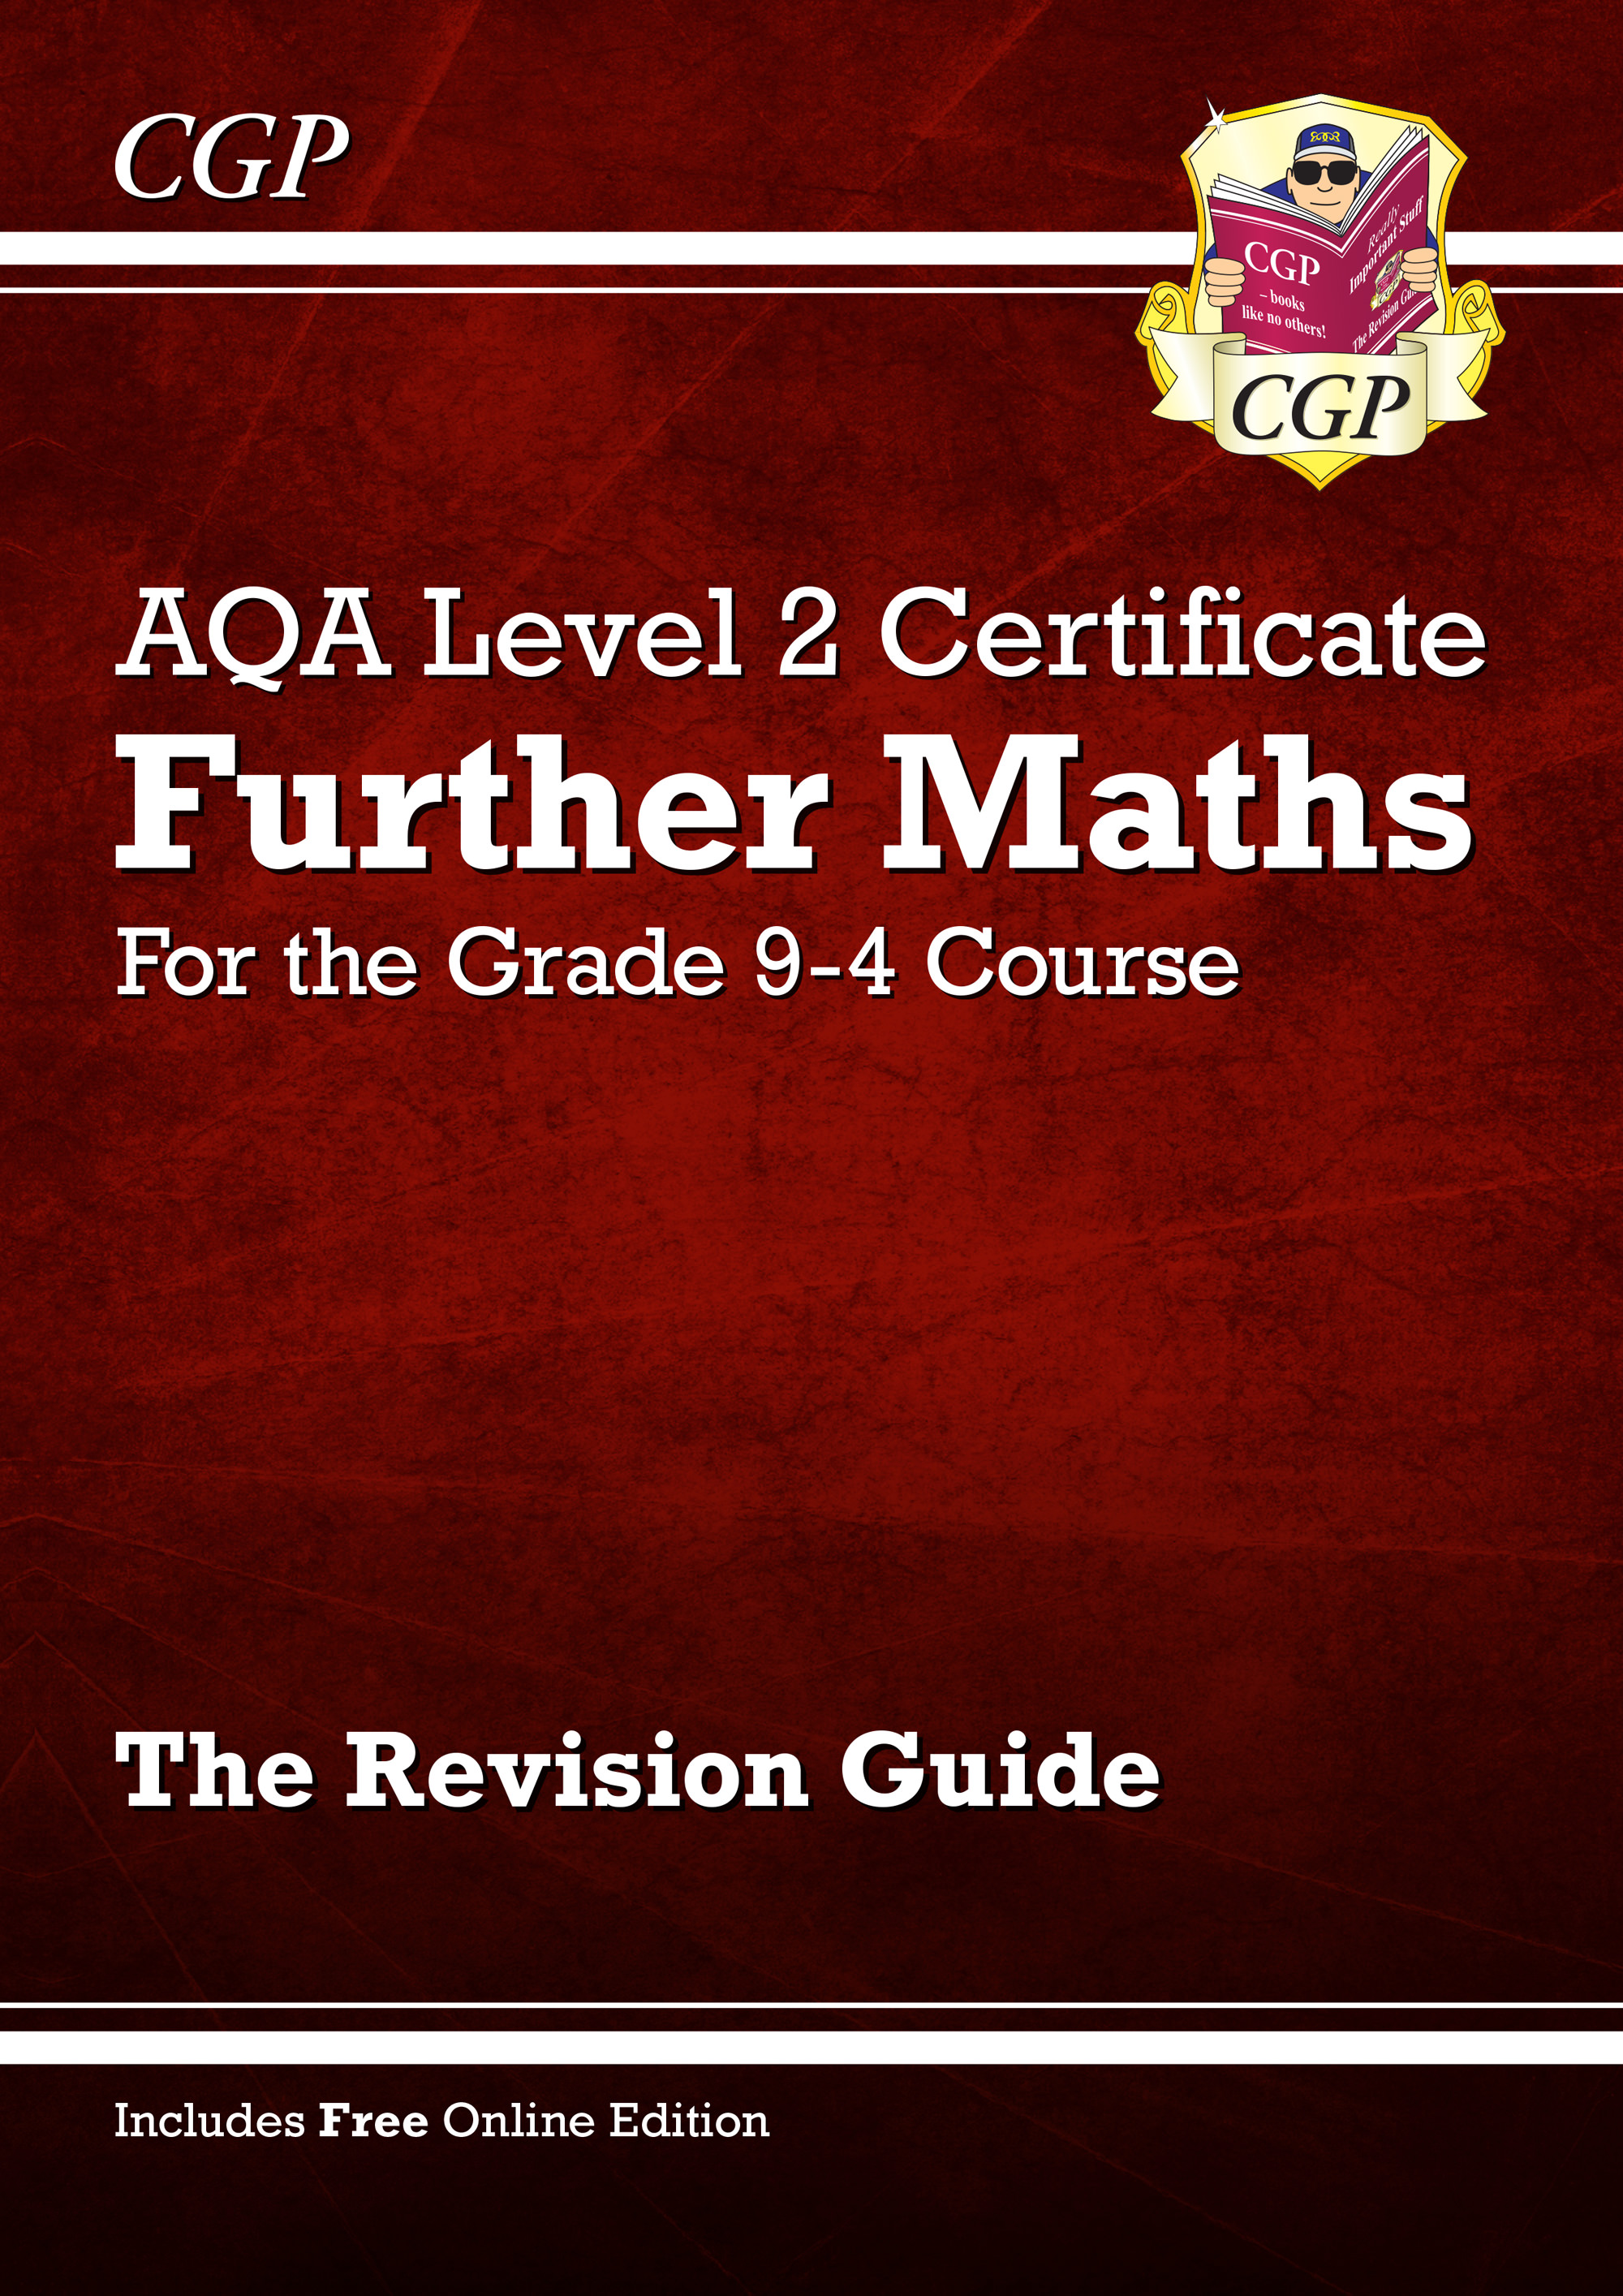 MARI42 - New Grade 9-4 AQA Level 2 Certificate: Further Maths - Revision Guide (with Online Edition)